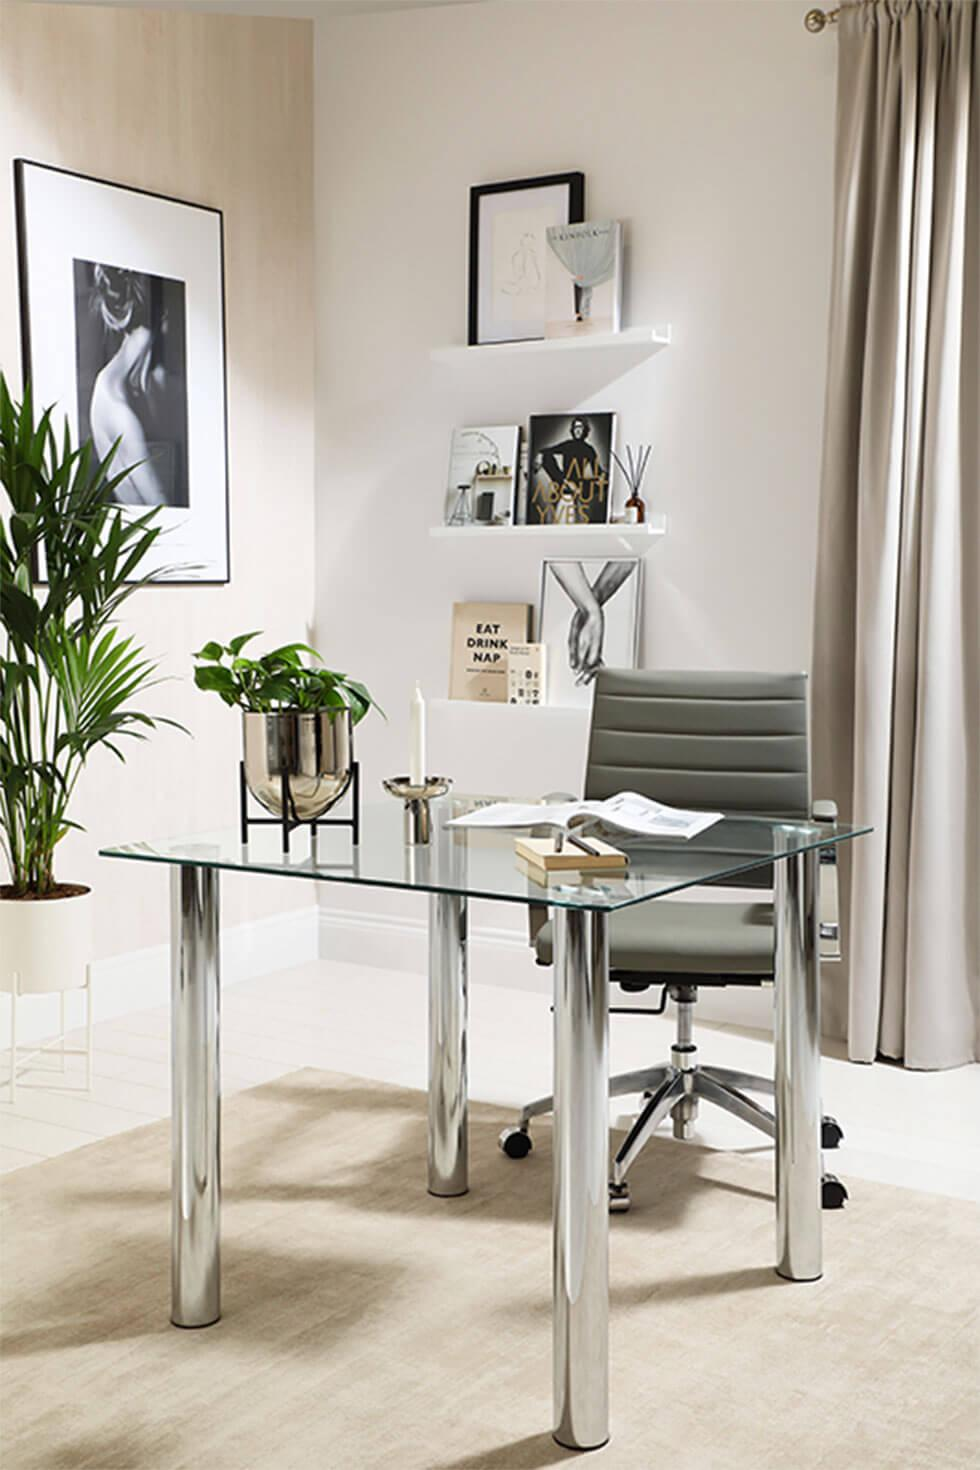 Modern home office with chrome table and indoor plants